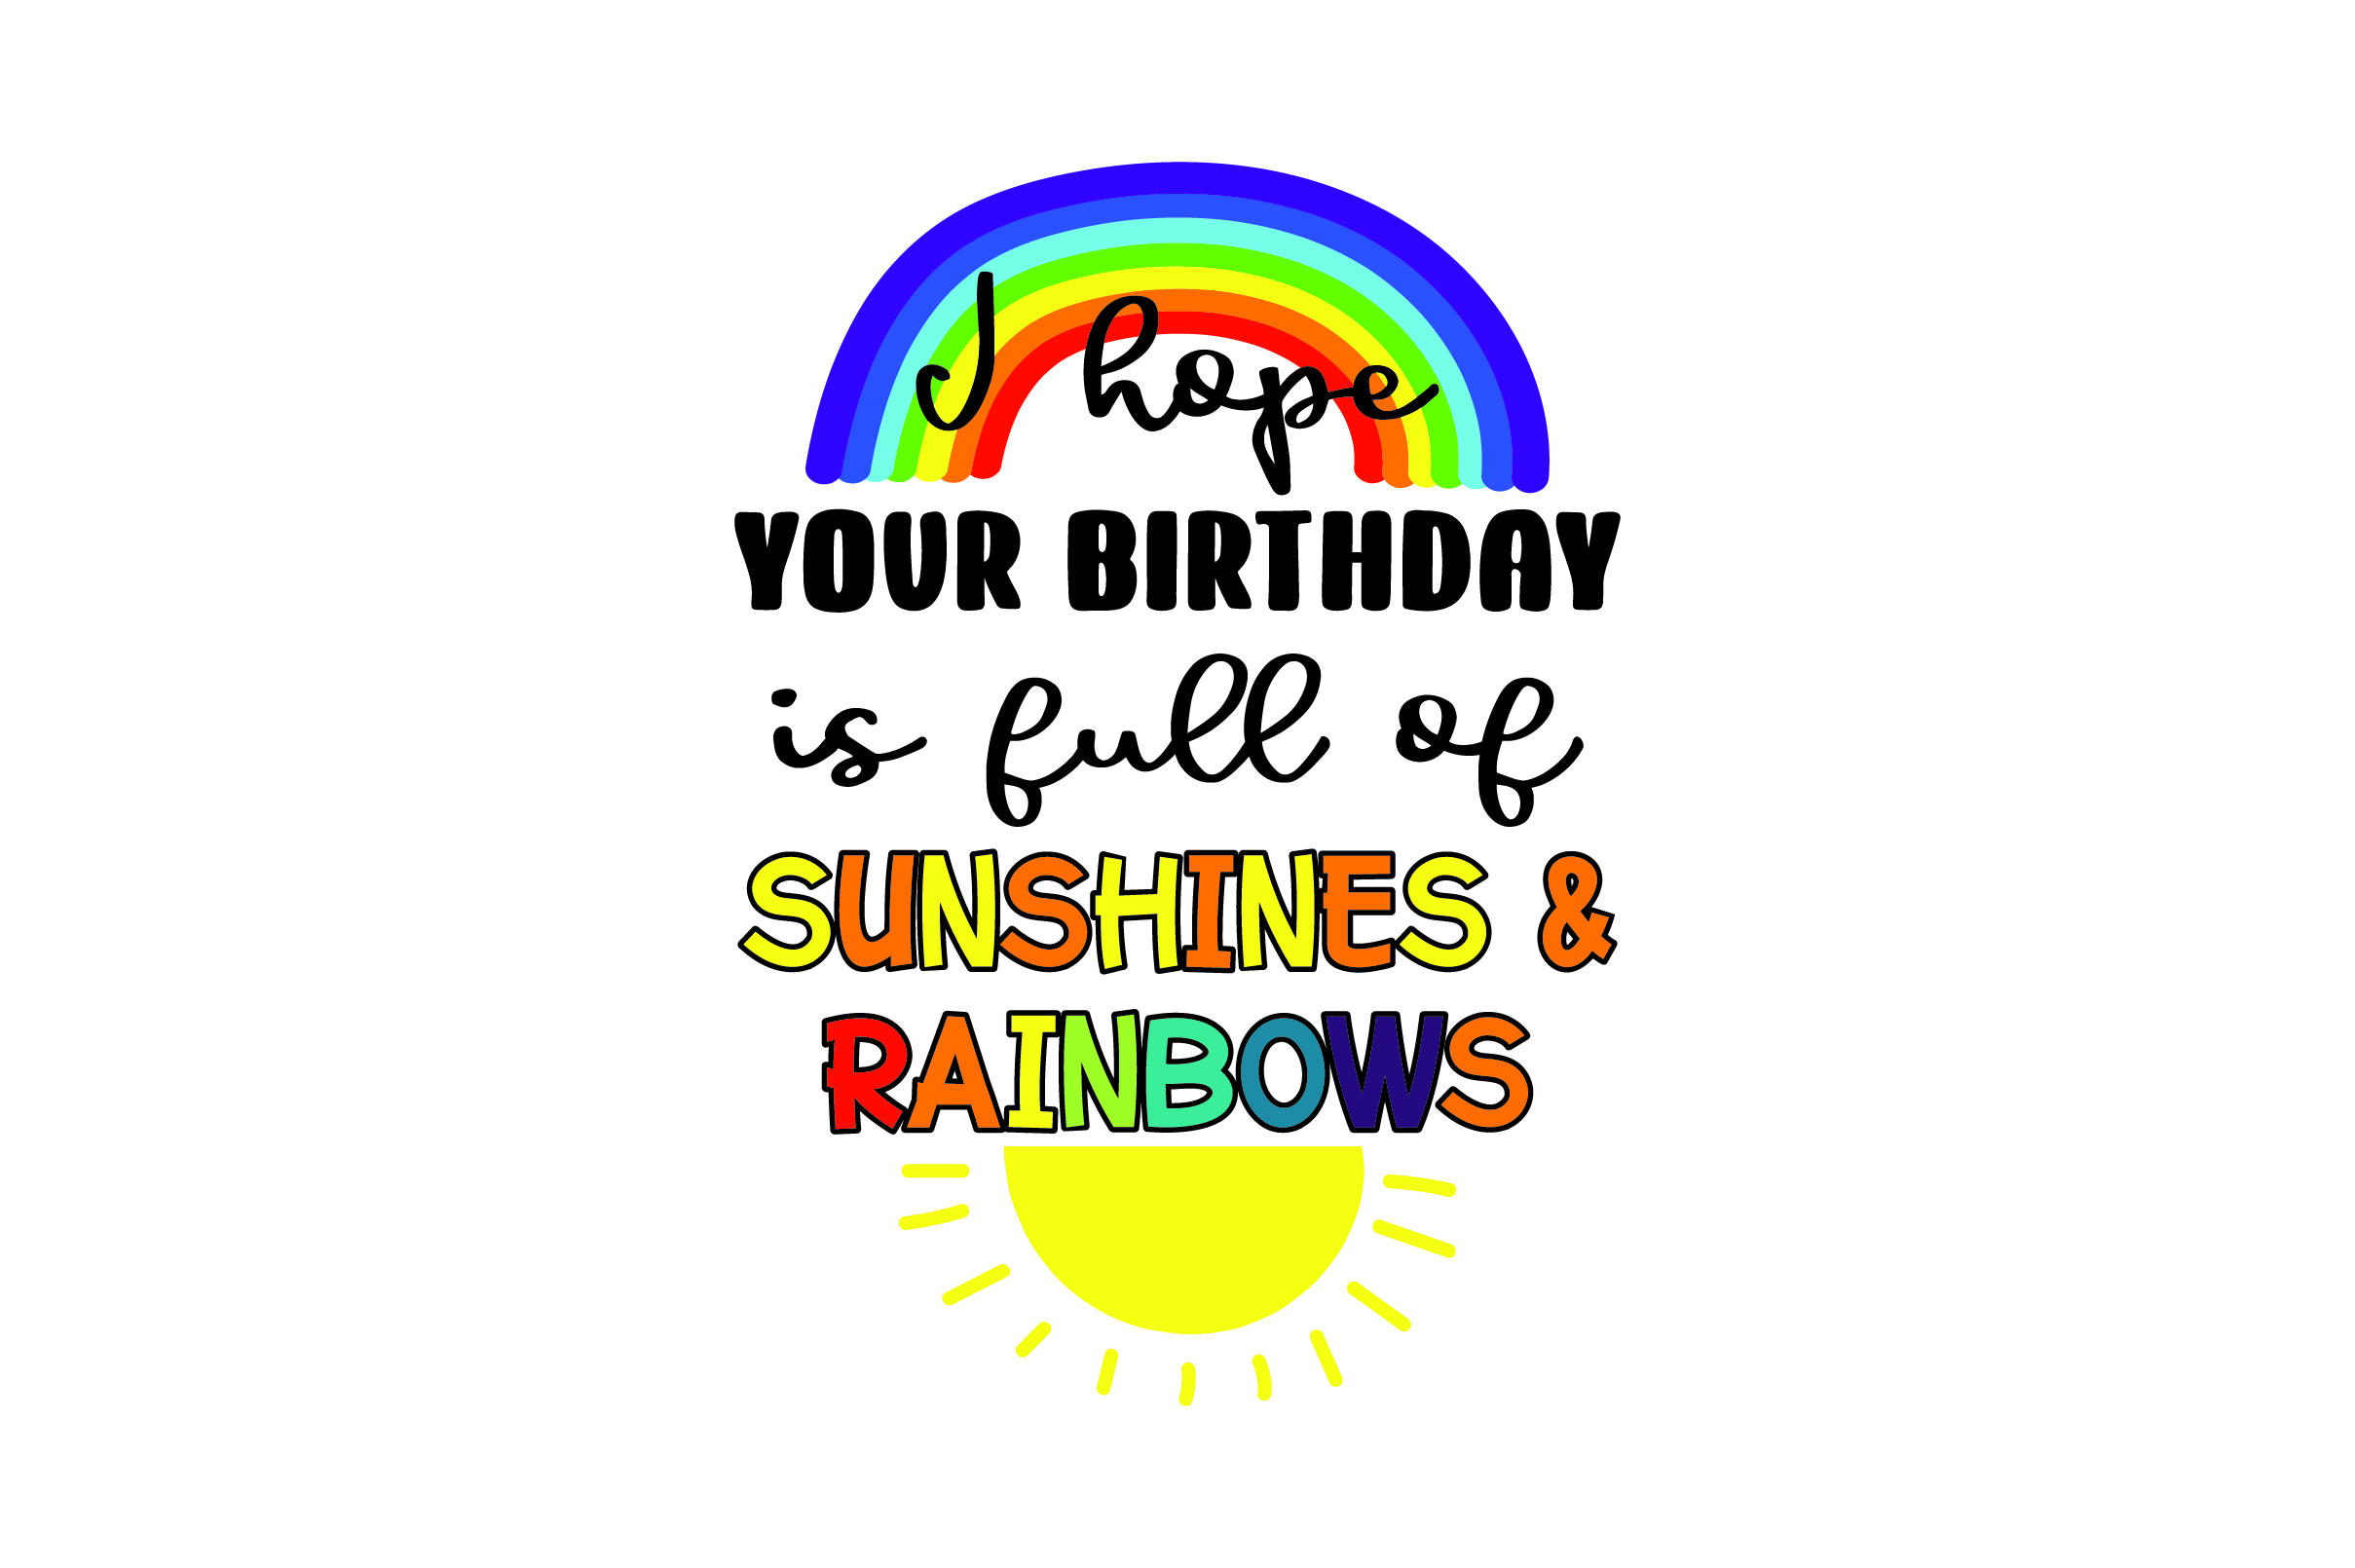 Download Free I Hope Your Birthday Is Full Of Sunshines Rainbows Svg Cut File for Cricut Explore, Silhouette and other cutting machines.